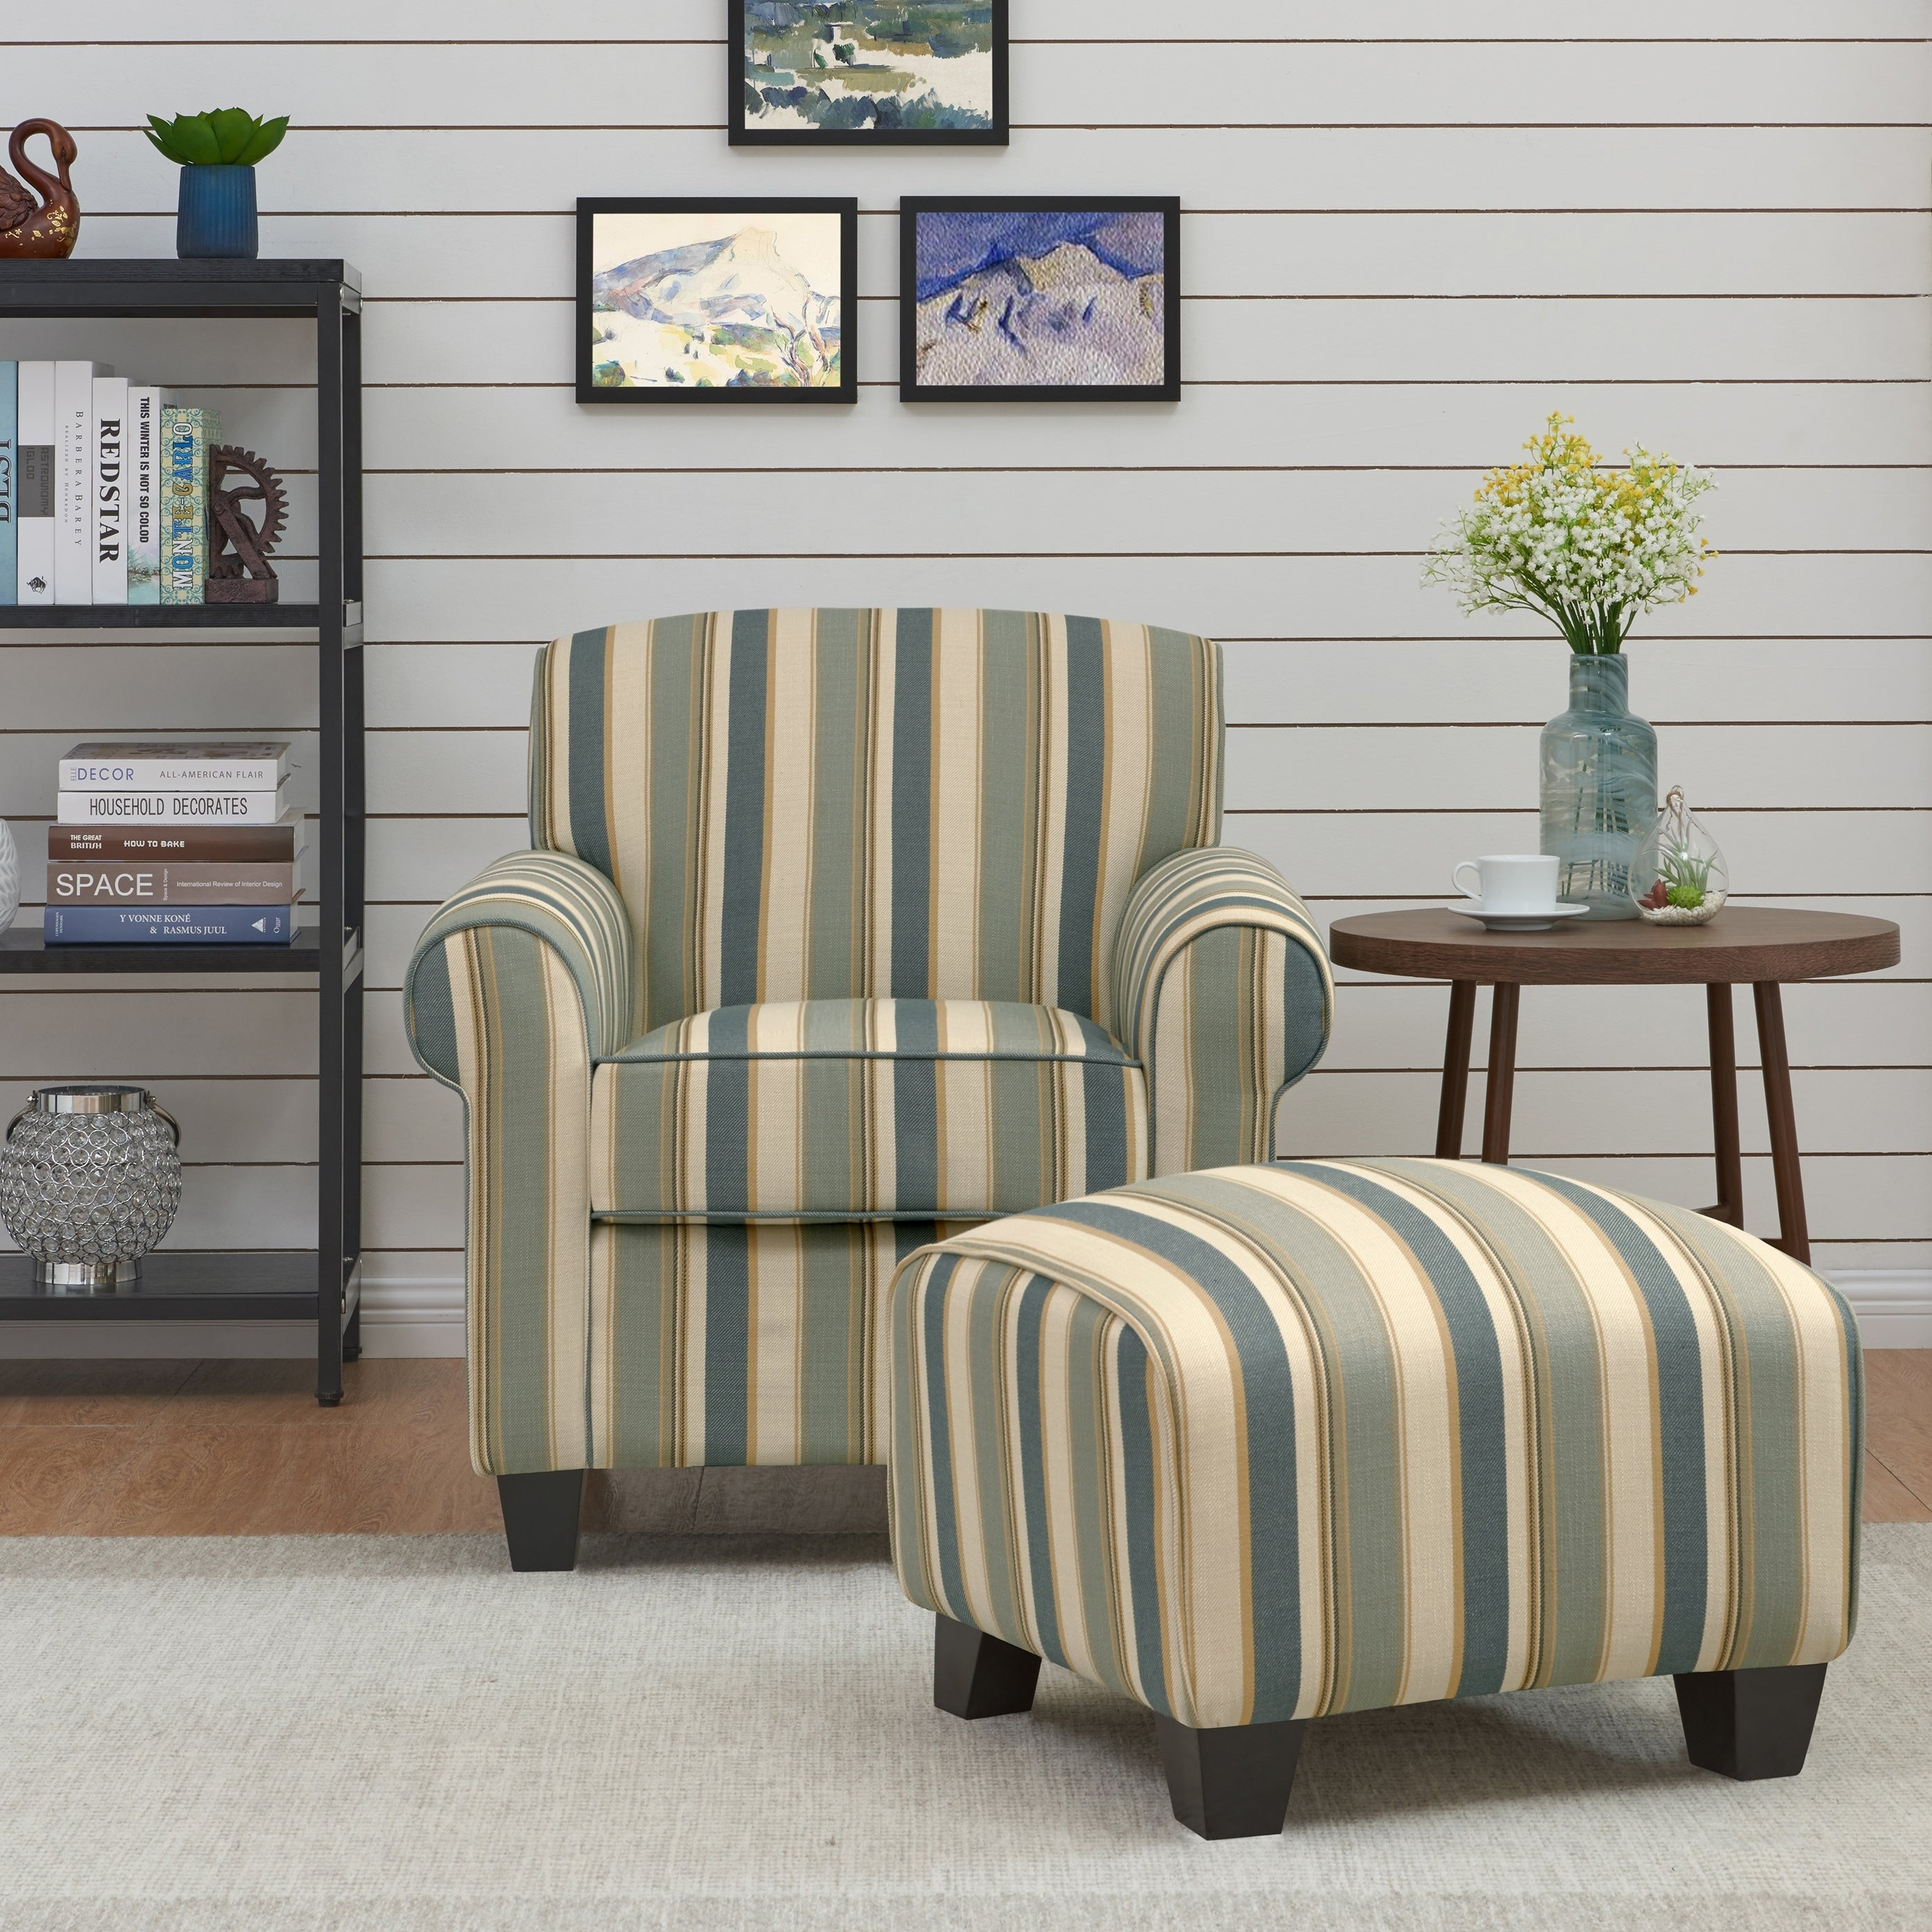 bbd52397a756 Shop Handy Living Mira Coastal Blue Stripe Arm Chair and Ottoman ...